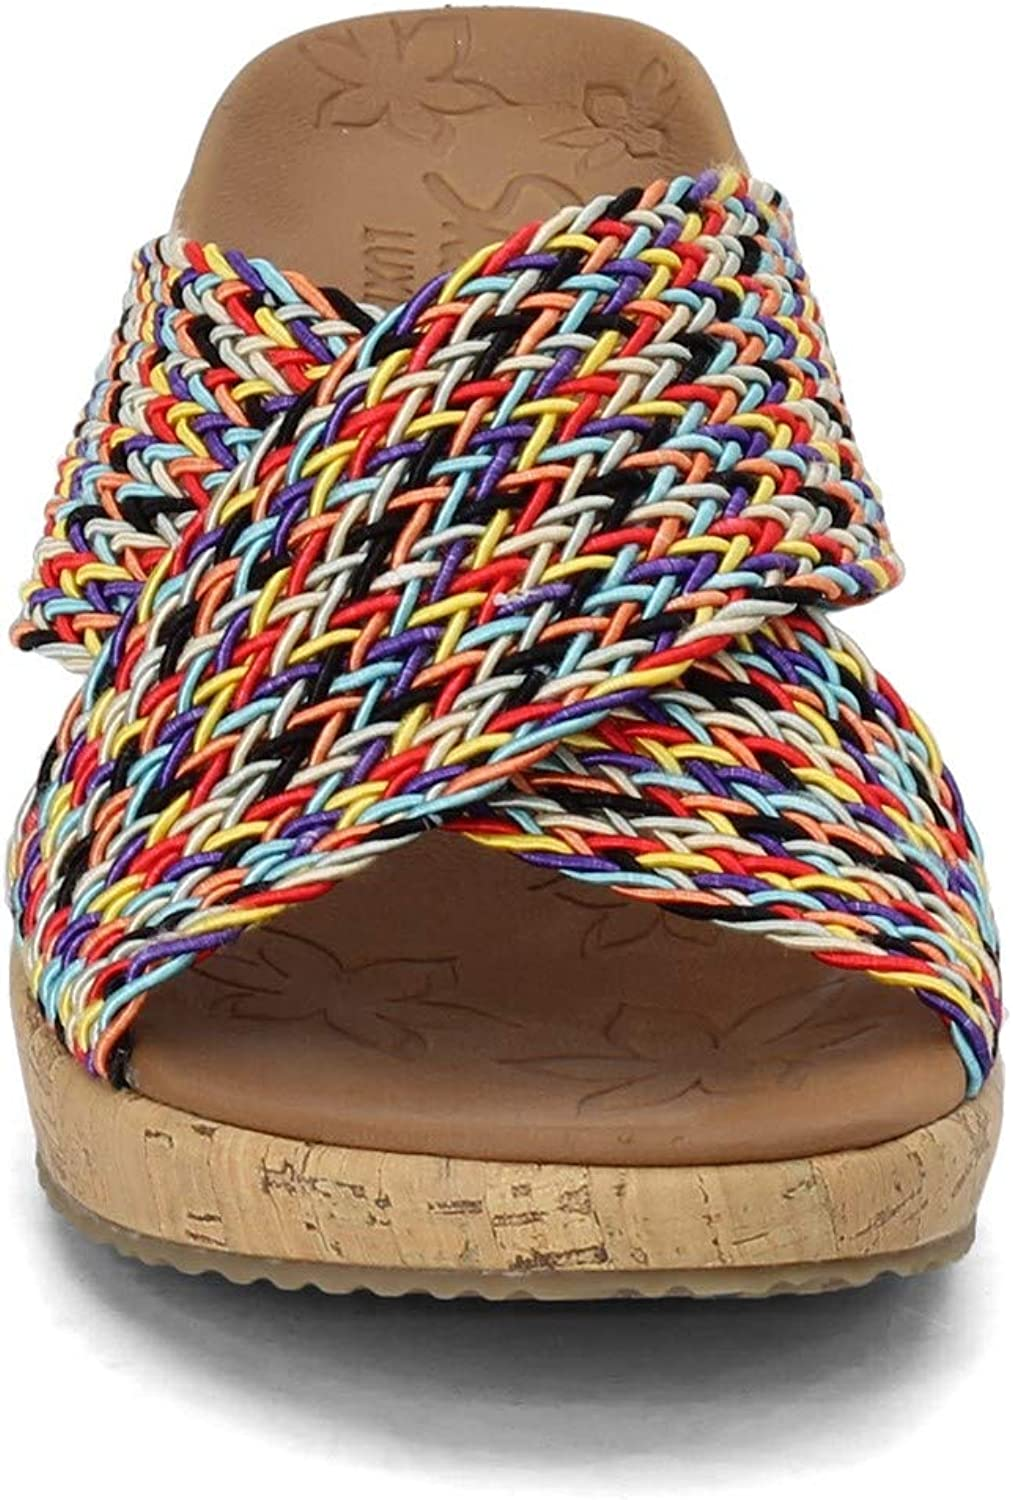 Skechers Beverlee-vacation Mode, Sandali Con Tacco A Cuneo. Donna Vero Multi